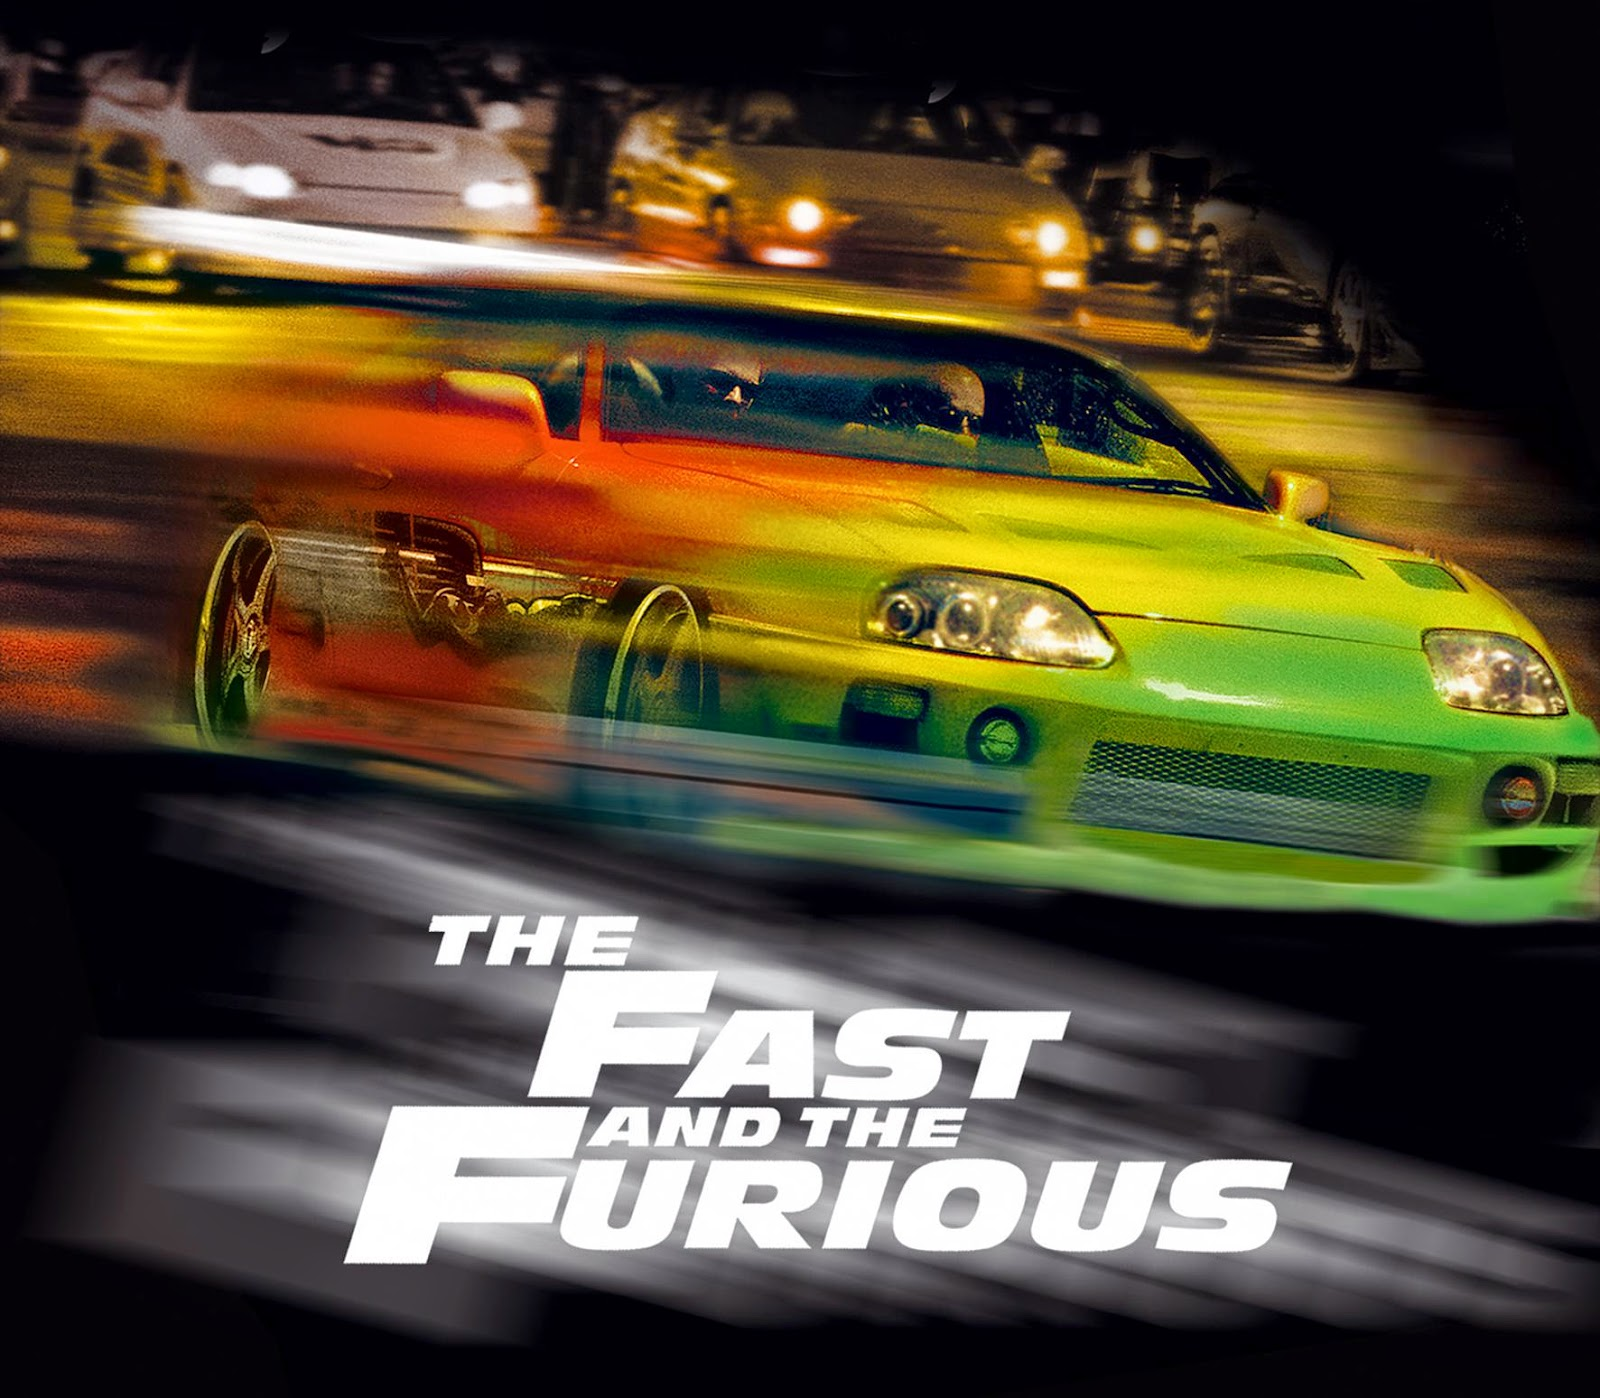 fast furious 1 aka the fast and the furious 2001 usa brrip 1080p yify 1400 mb google drive. Black Bedroom Furniture Sets. Home Design Ideas